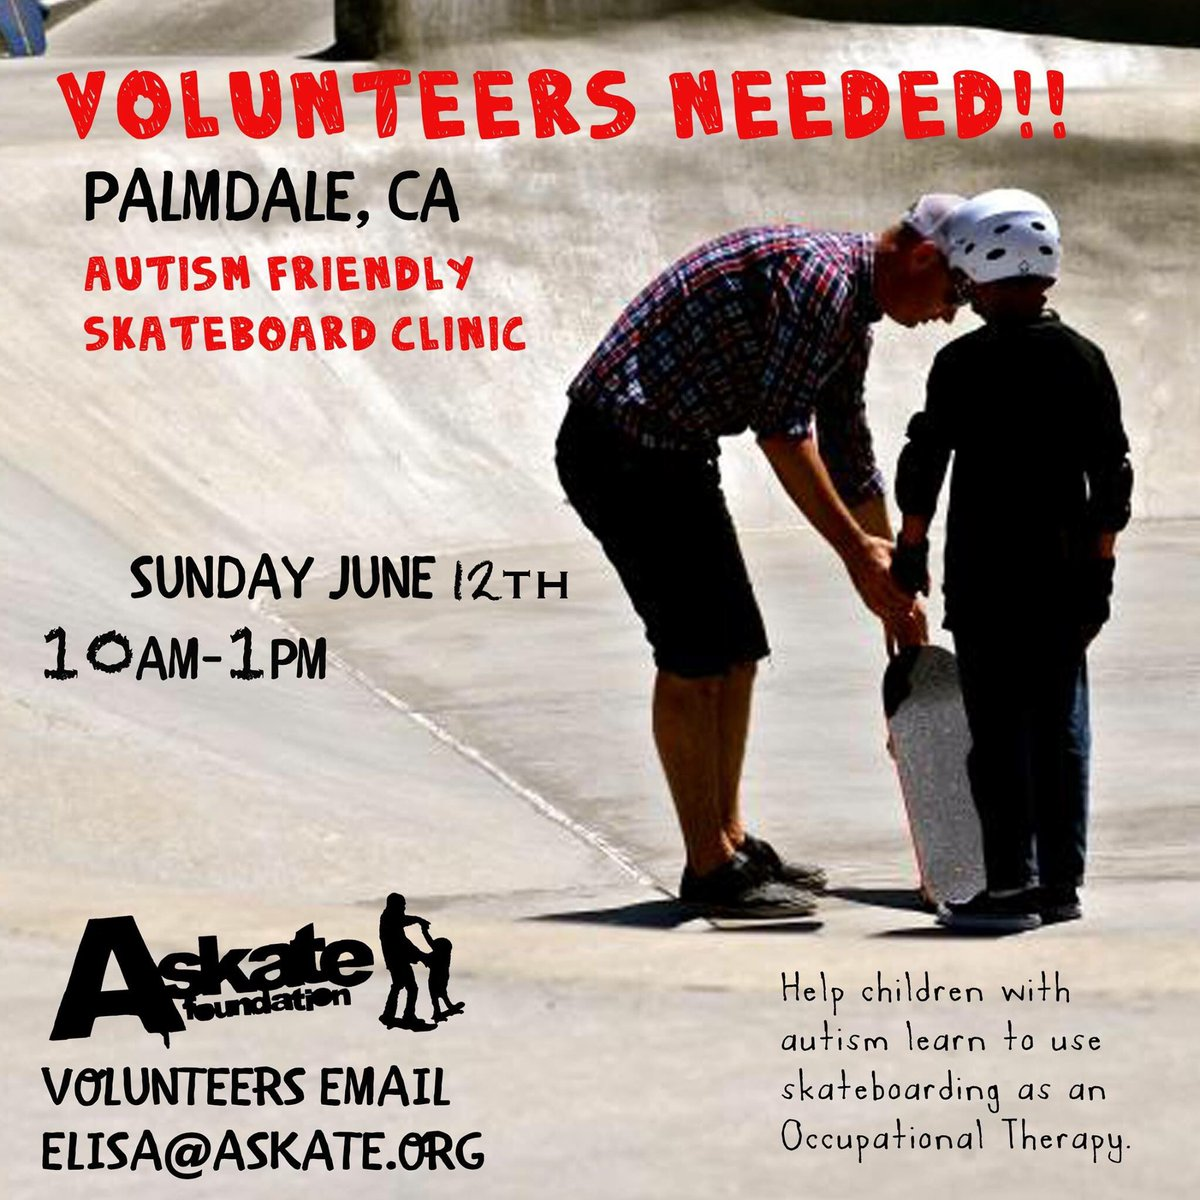 @vansskate Please help! In need of 20 volunteers! Please repost & help us Spread the word!#Autism #Skateboarding https://t.co/VxlW1w2Anp